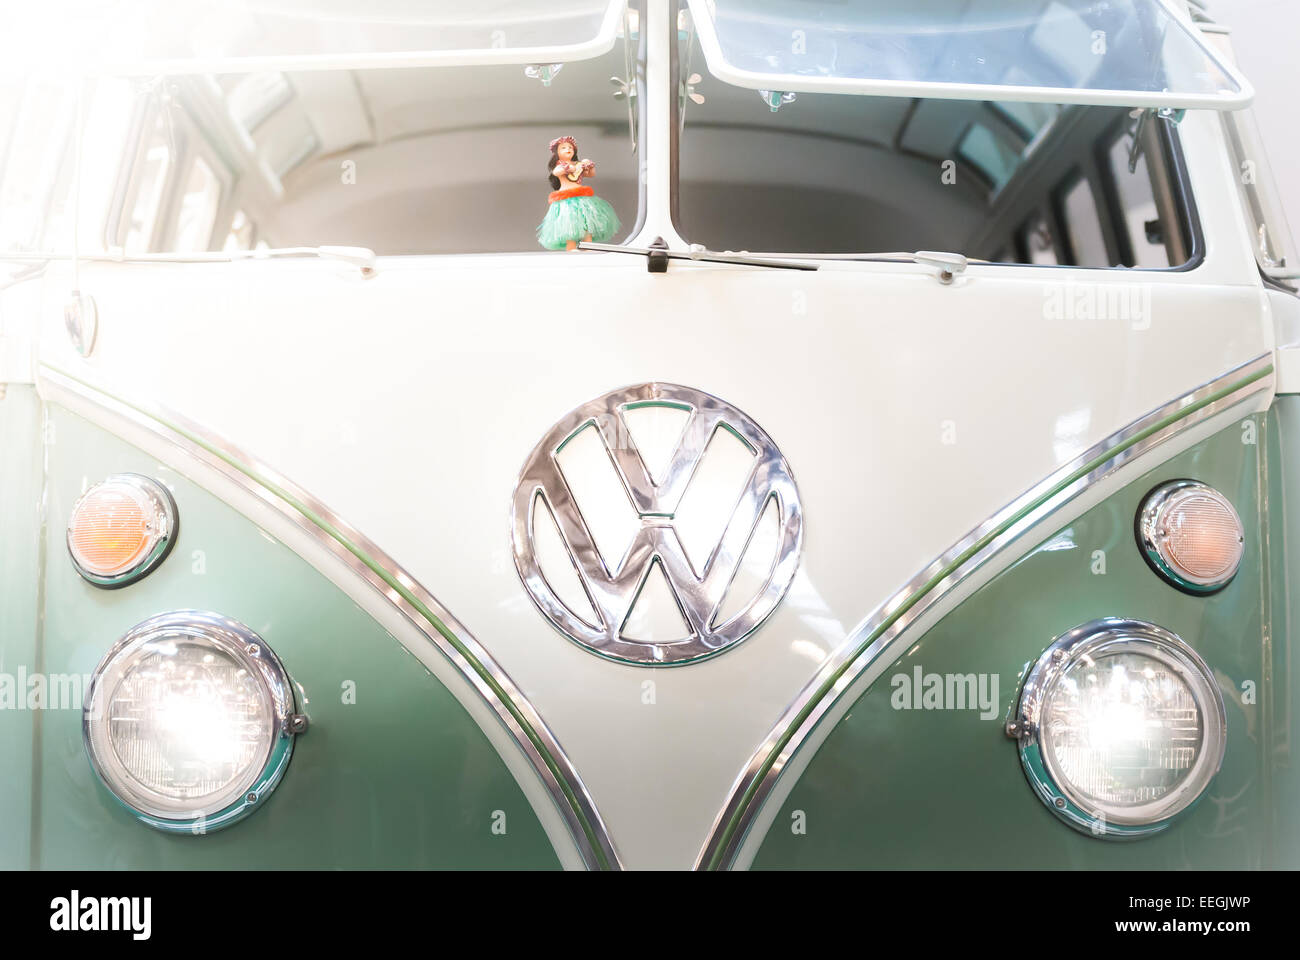 Moscow, Russia - March 3, 2013: Front view of a green and white 1960s VW campervan with the iconic volkswagen badge Stock Photo